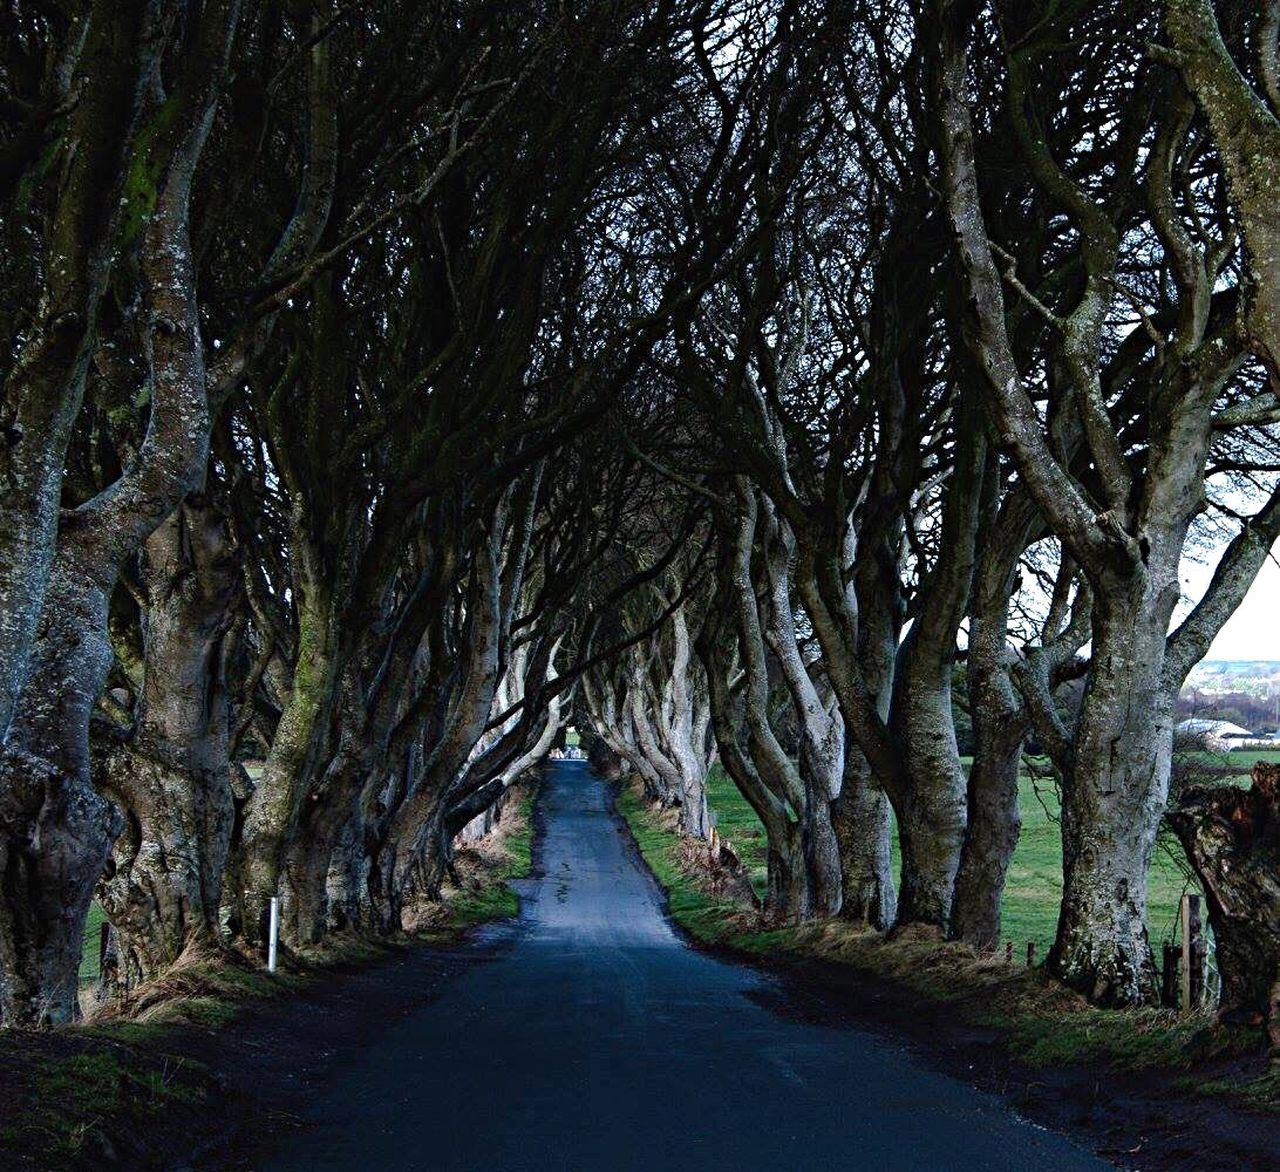 Dark Hedges The Way Forward Tree Road Treelined Beauty In Nature Nature Nature Photography Outdoor Photography Nature_collection TreePorn Tree Tunnel Top Eyem Best Shots Nature_collection Eye4photography